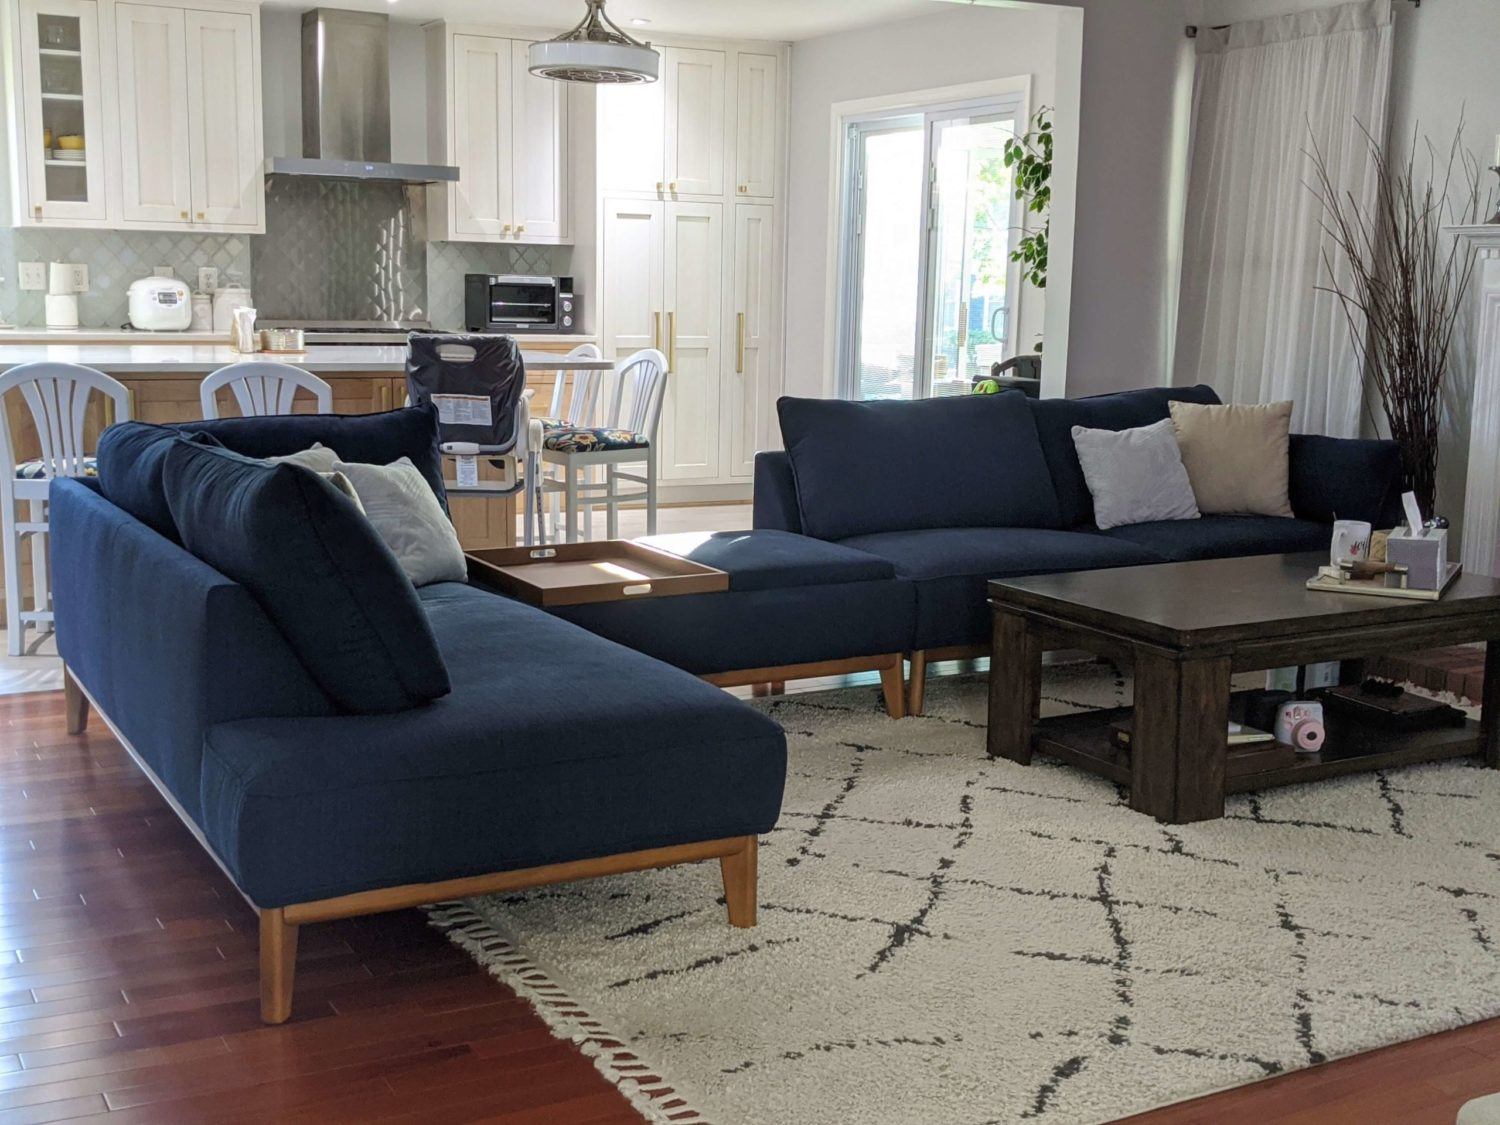 Macy's Jollene 113 sectional and ottoman